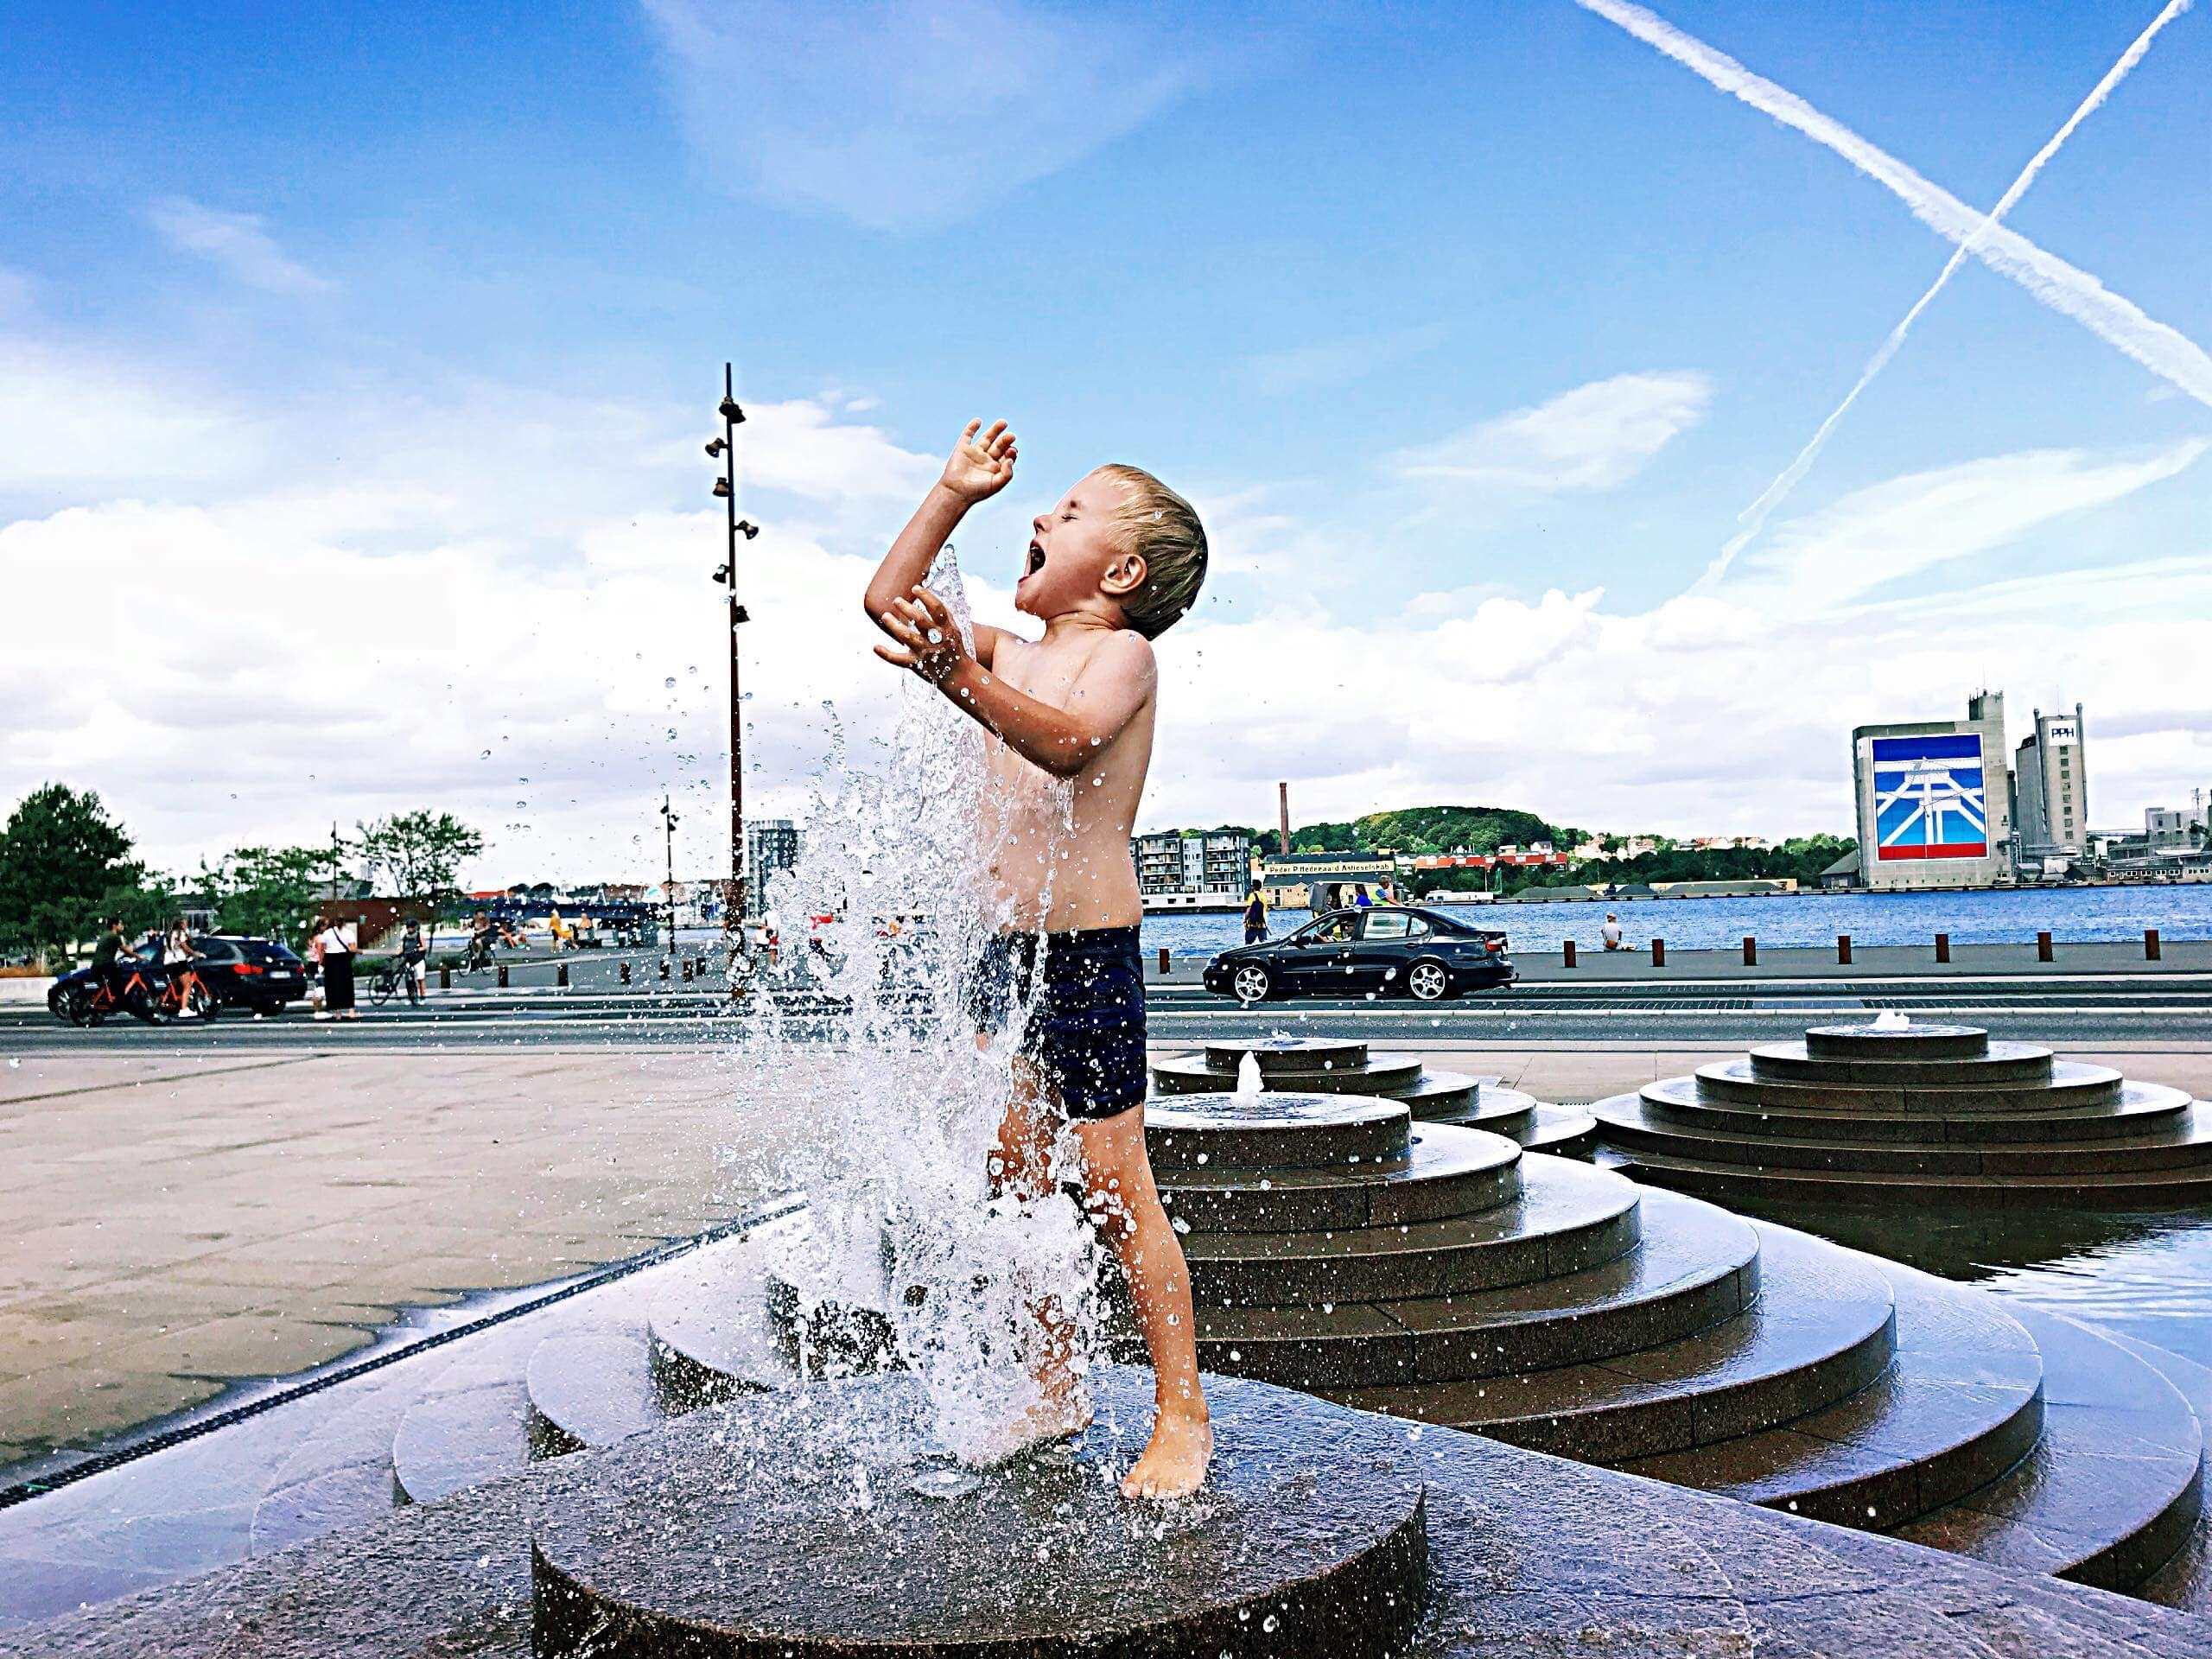 Boy Standing On Outdoor Fountain